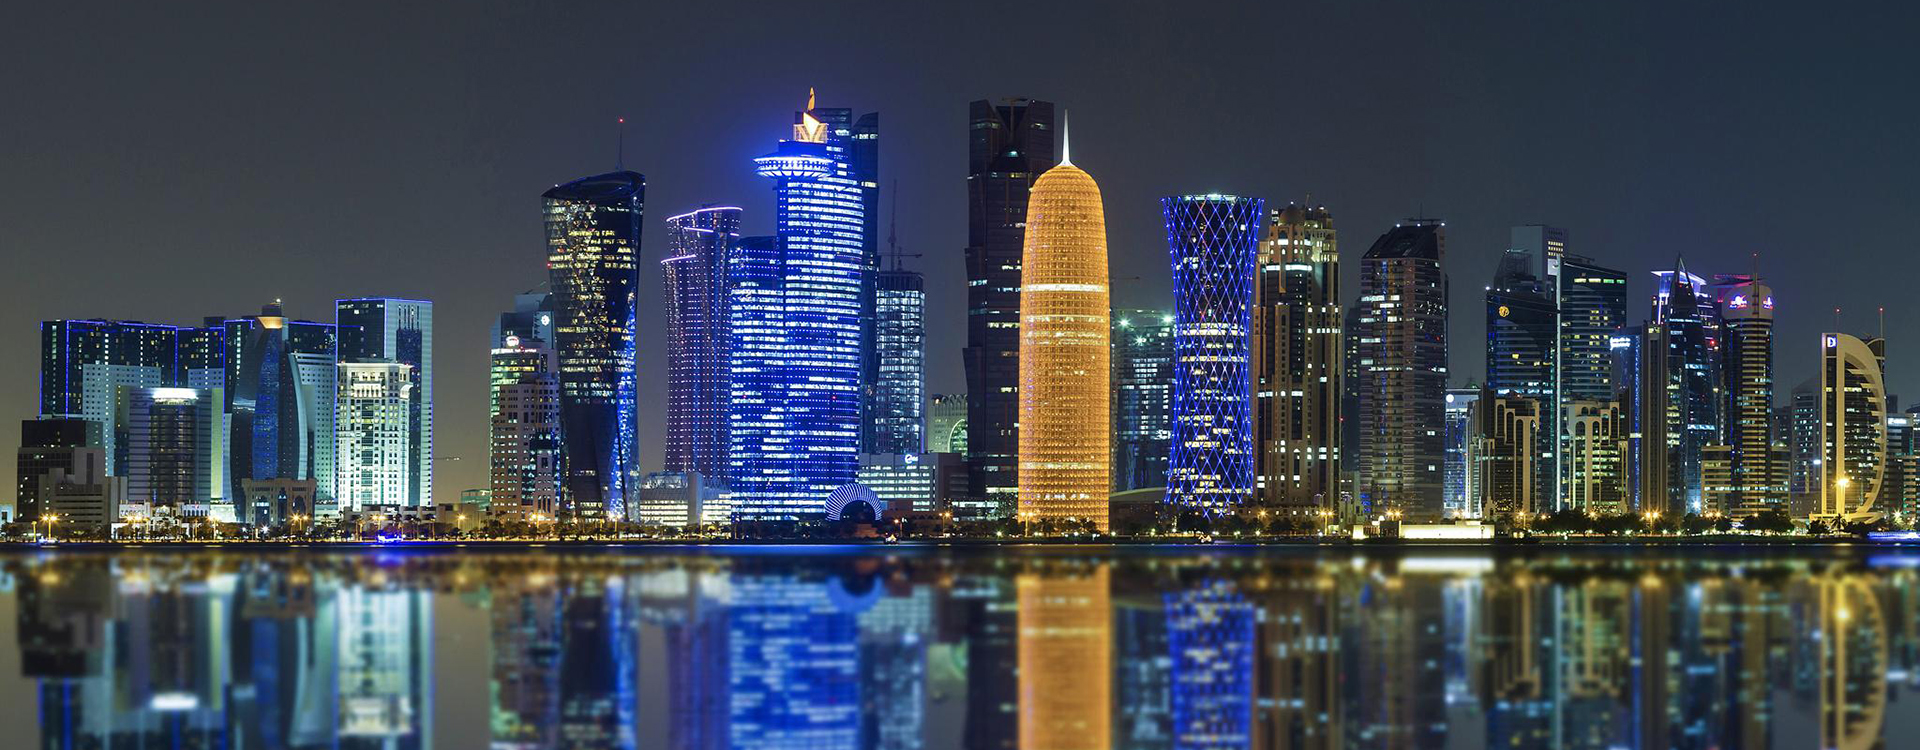 Smart Mode Business Trading WLL - Doha, Qatar